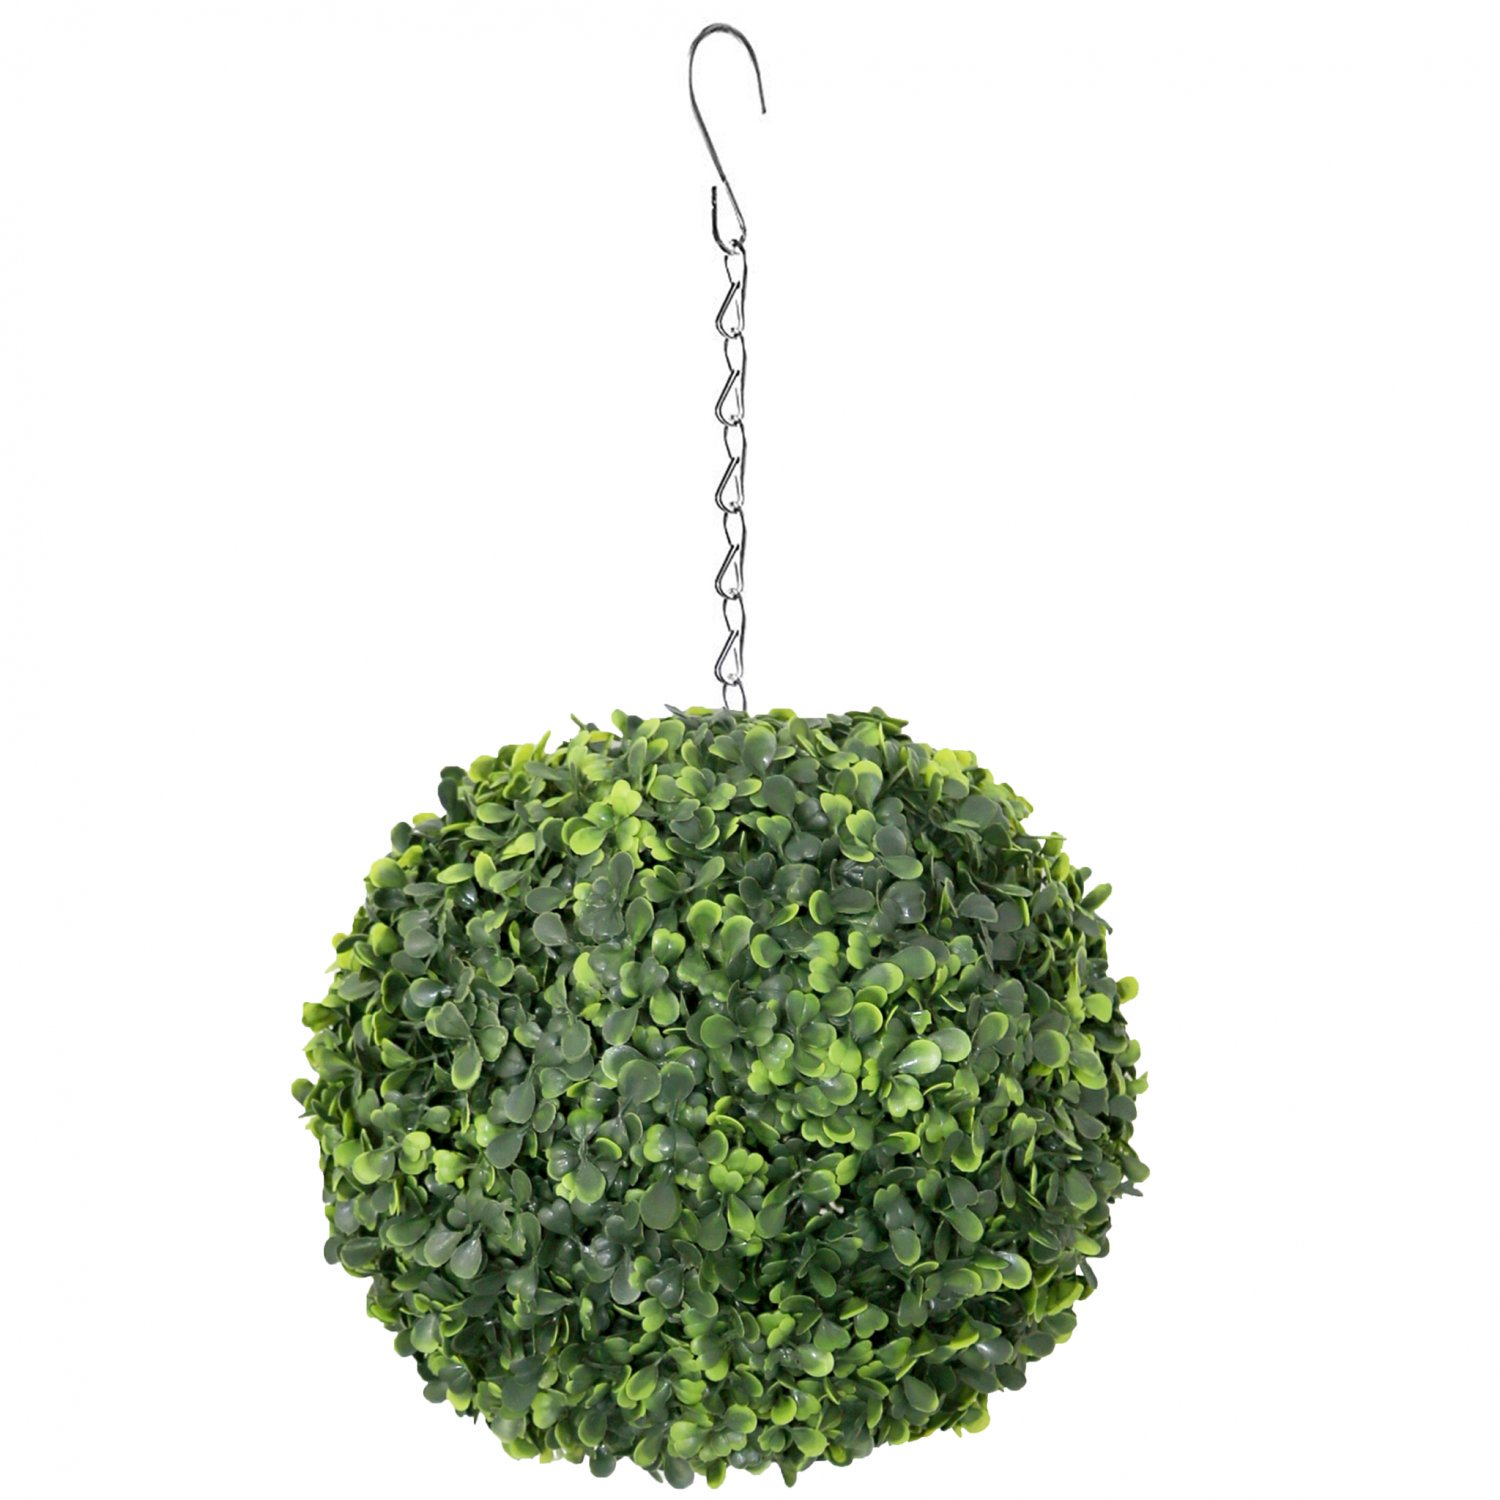 Artificial 28cm Hanging Topiary Tree Boxwood Buxus Ball